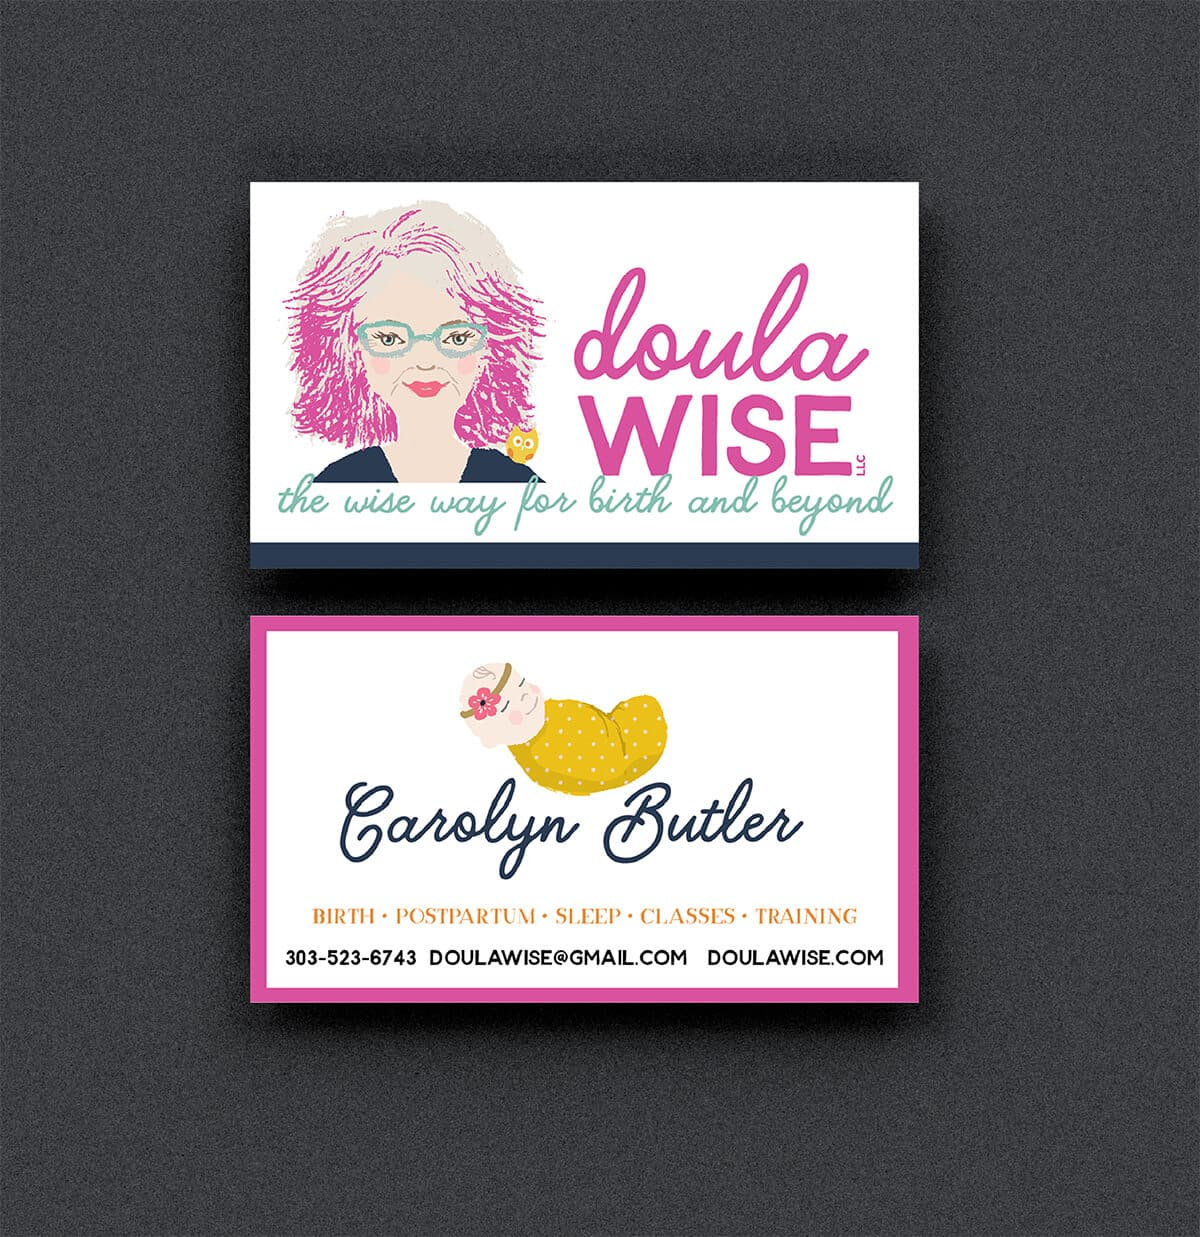 Portfolio | Business Card Design for Doula Wise Front and Back